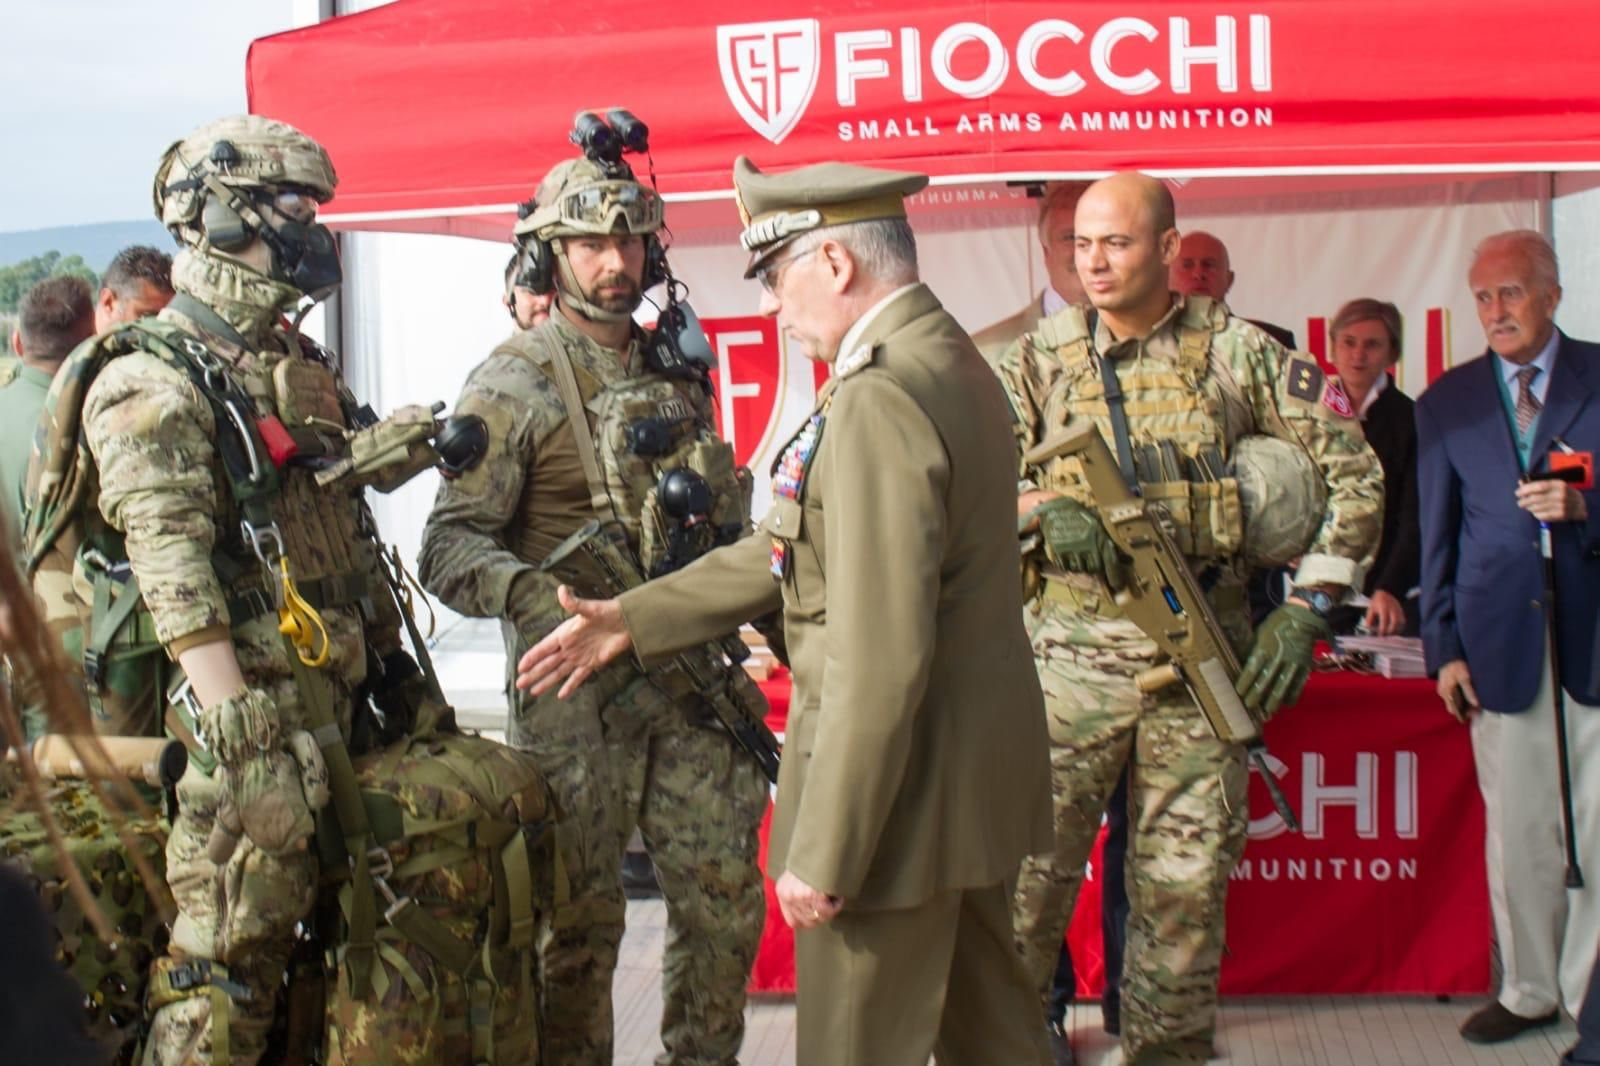 Italian Army General Claudio Graziano trying to shake hands with a military dummy during an official event, 2018